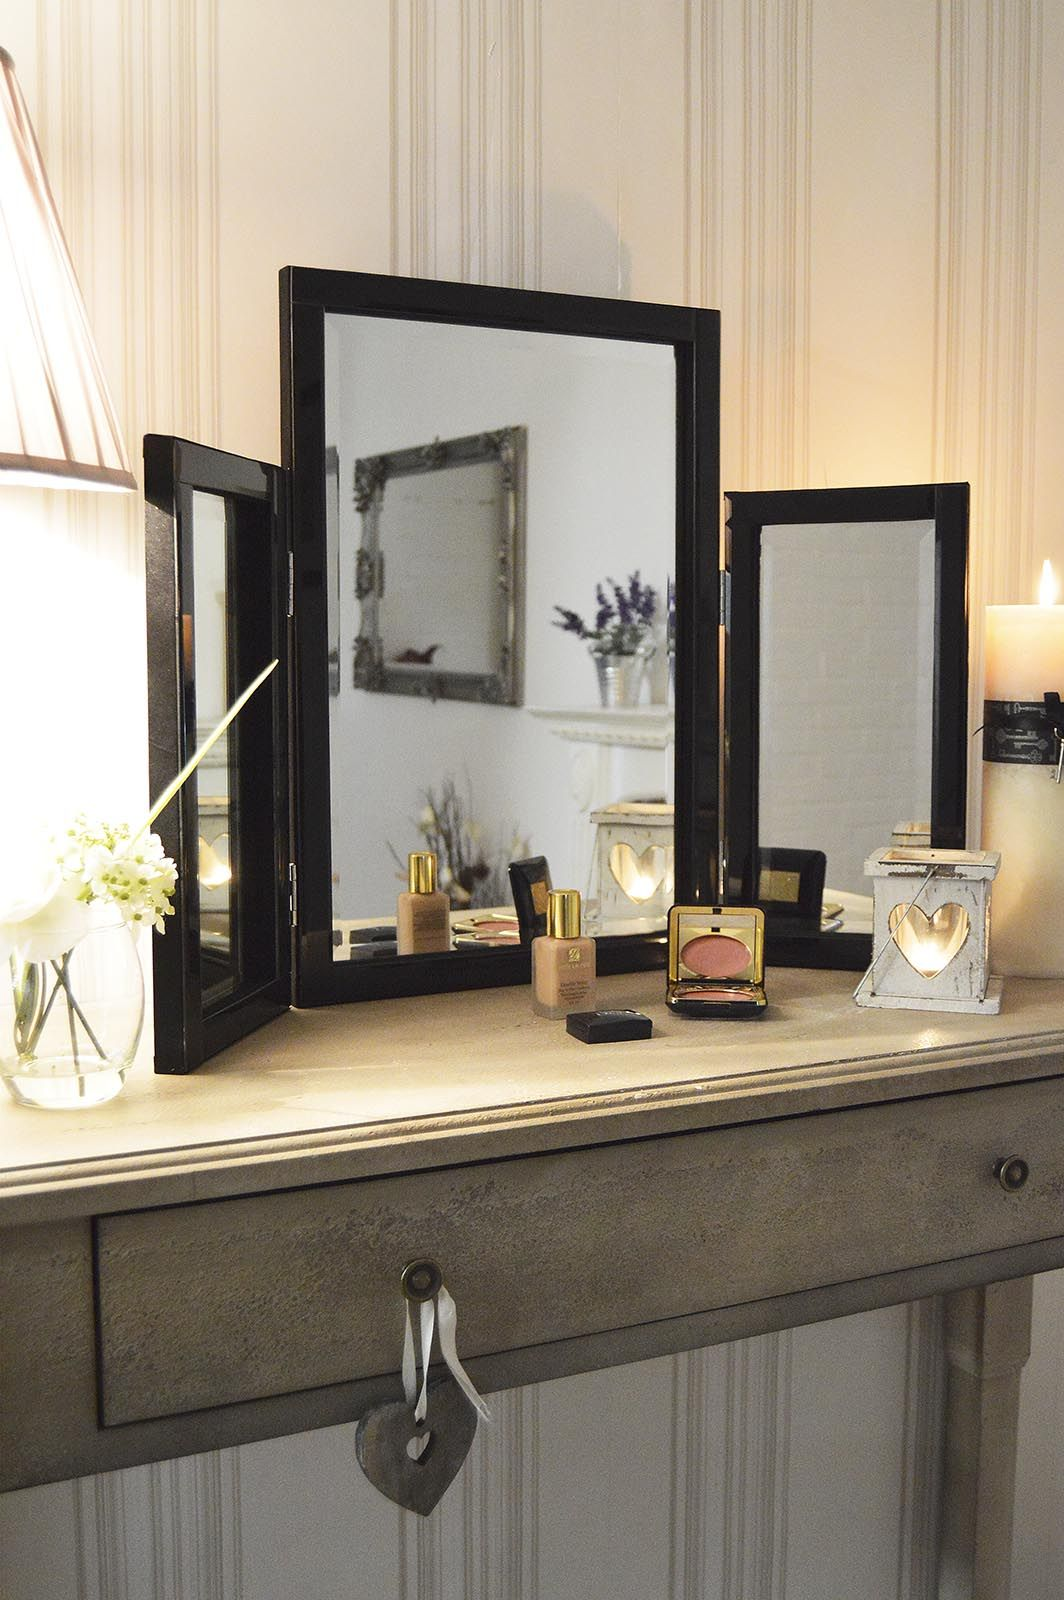 Dressing table mirrors with lights triple black glass dressing table mirror xcm  cheap mirrors